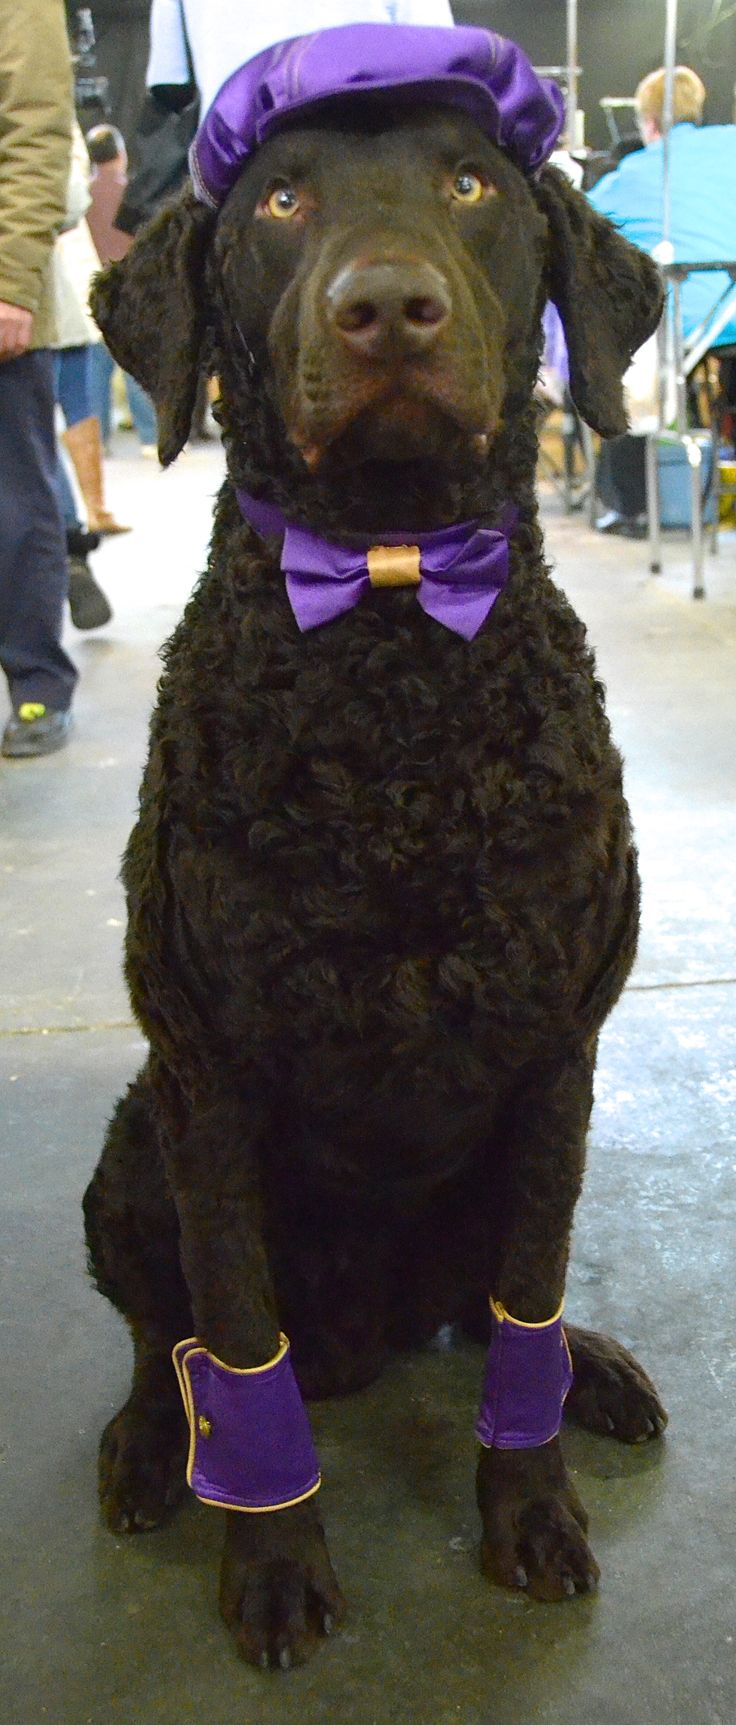 Lodi the Curly Coated Retriever. Westminster Kennel Club Dog Show 2014. 02/11/14.